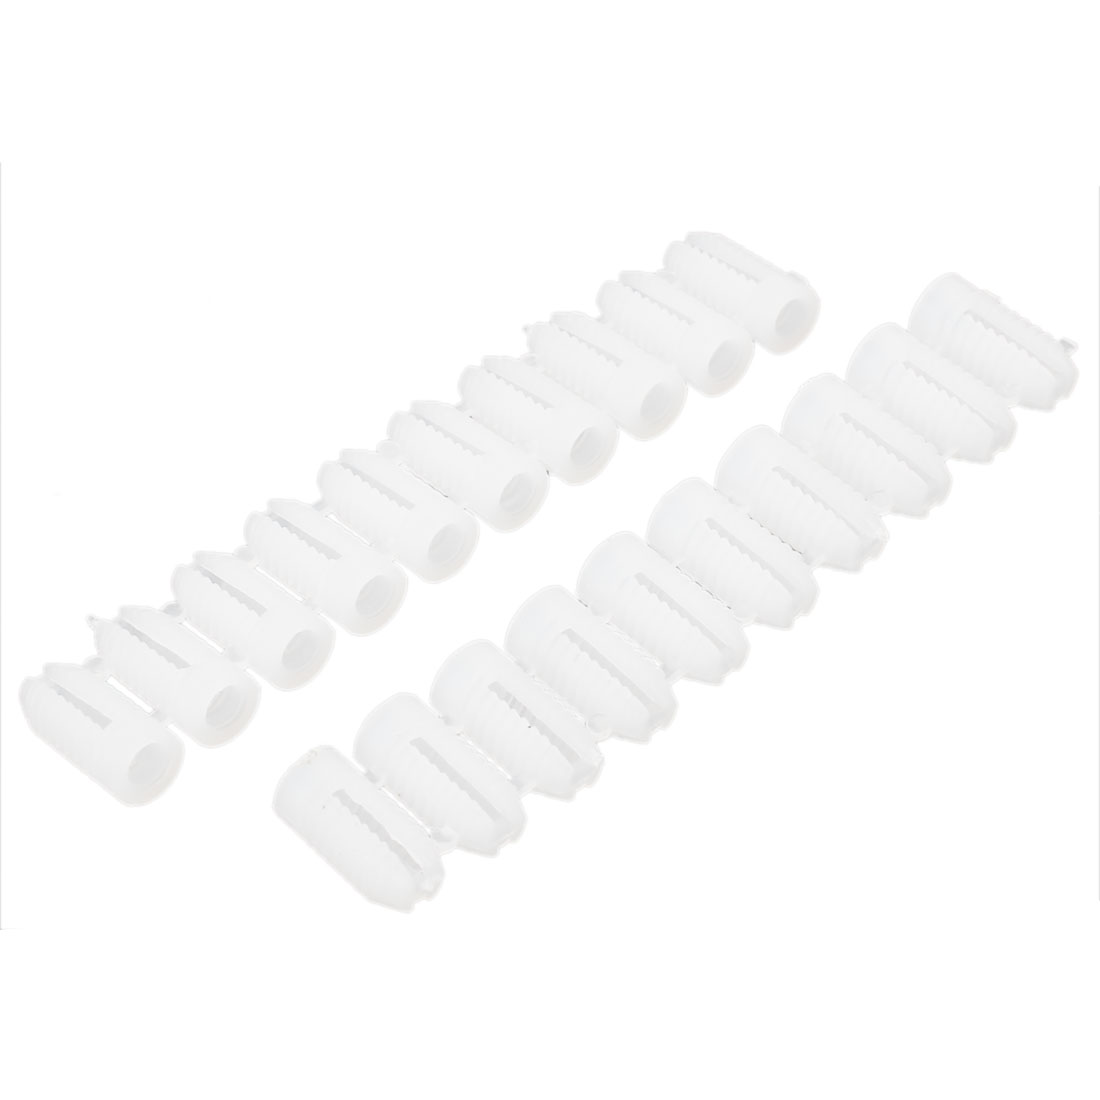 White Plastic 5mm Diameter Screw Wall Expansion Bolt Plug 20 Pieces